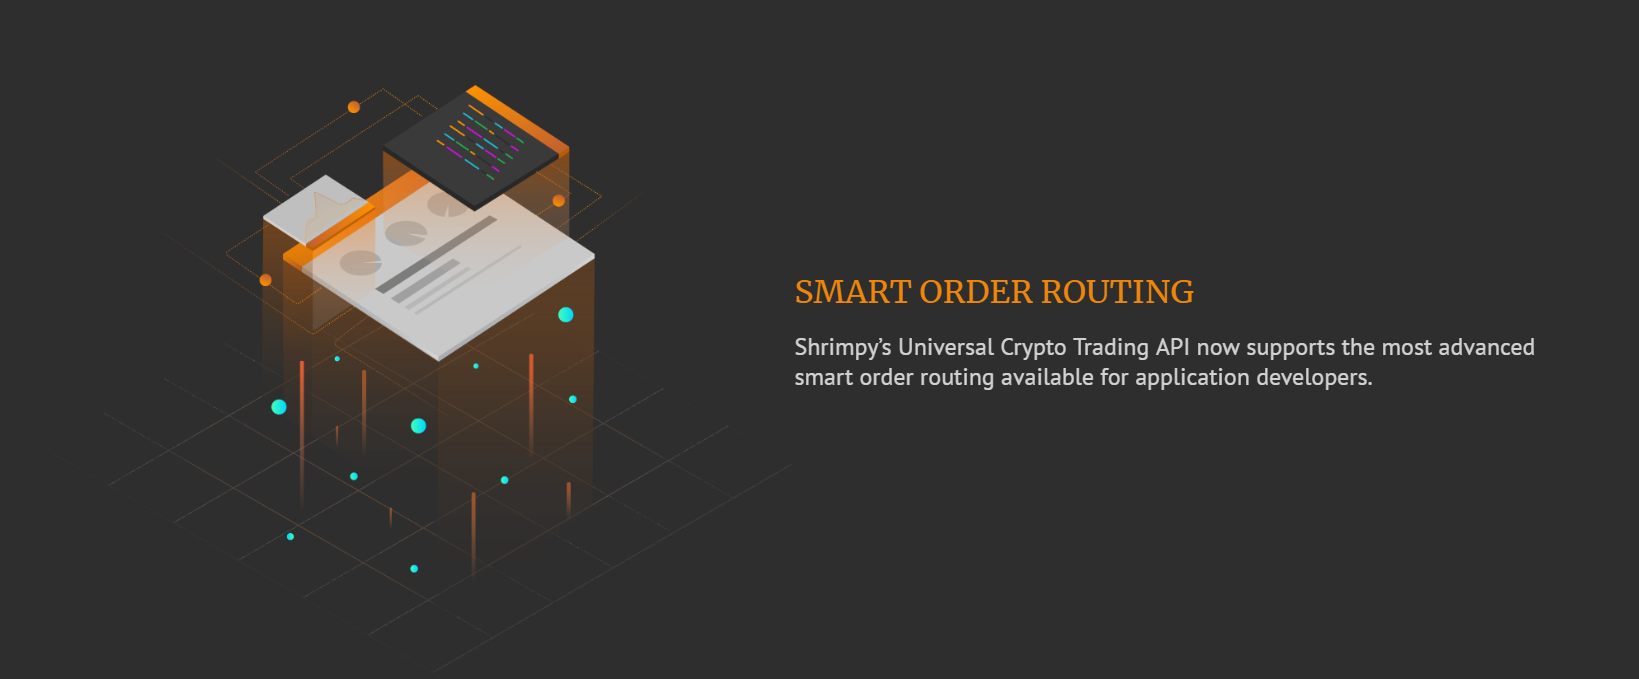 smart order routing cover cropped.png